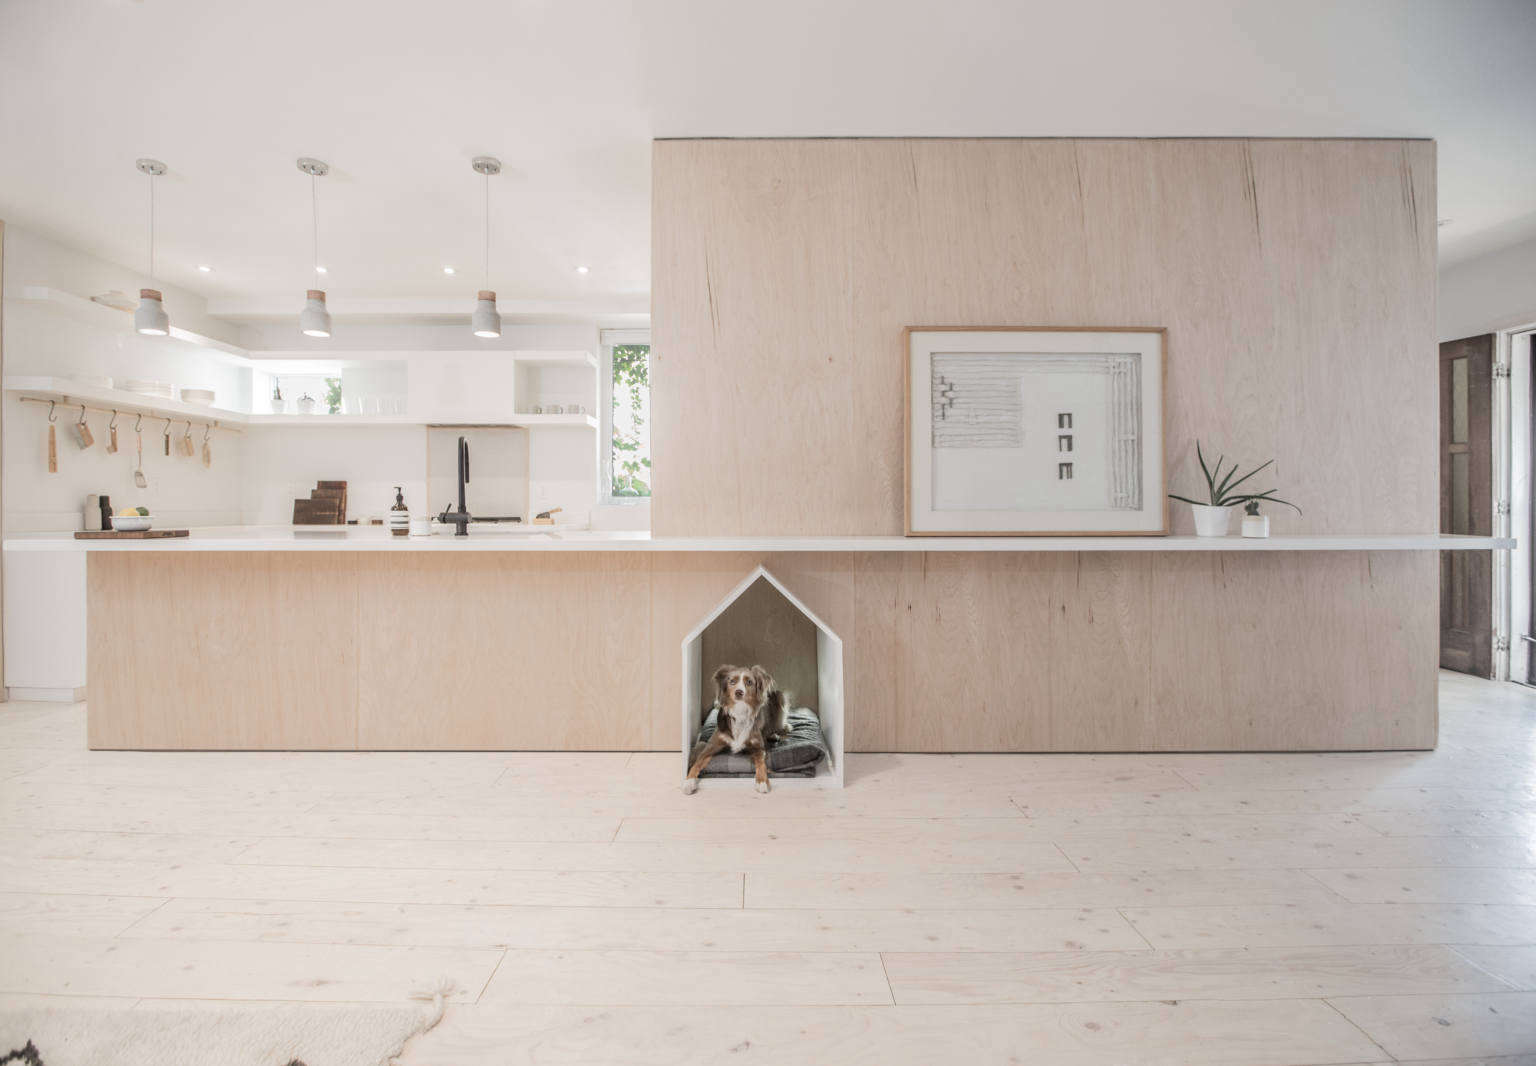 Cabinet D Architecte Nice an open kitchen design with a built-in dog house, ikea